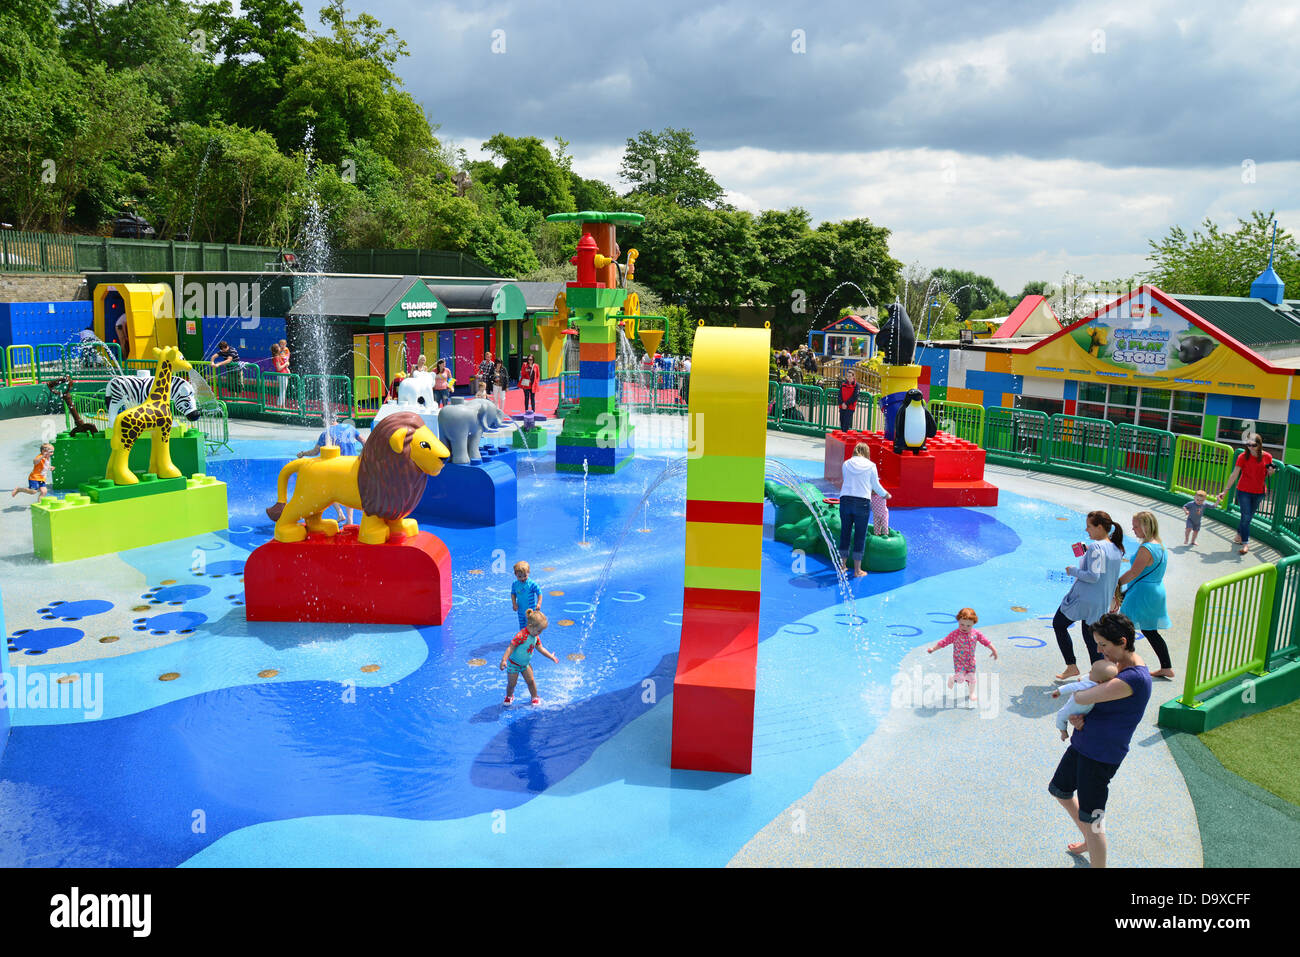 Duplo valley splash play attraction at legoland windsor resort stock photo 57743603 alamy for Hotels near legoland with swimming pool